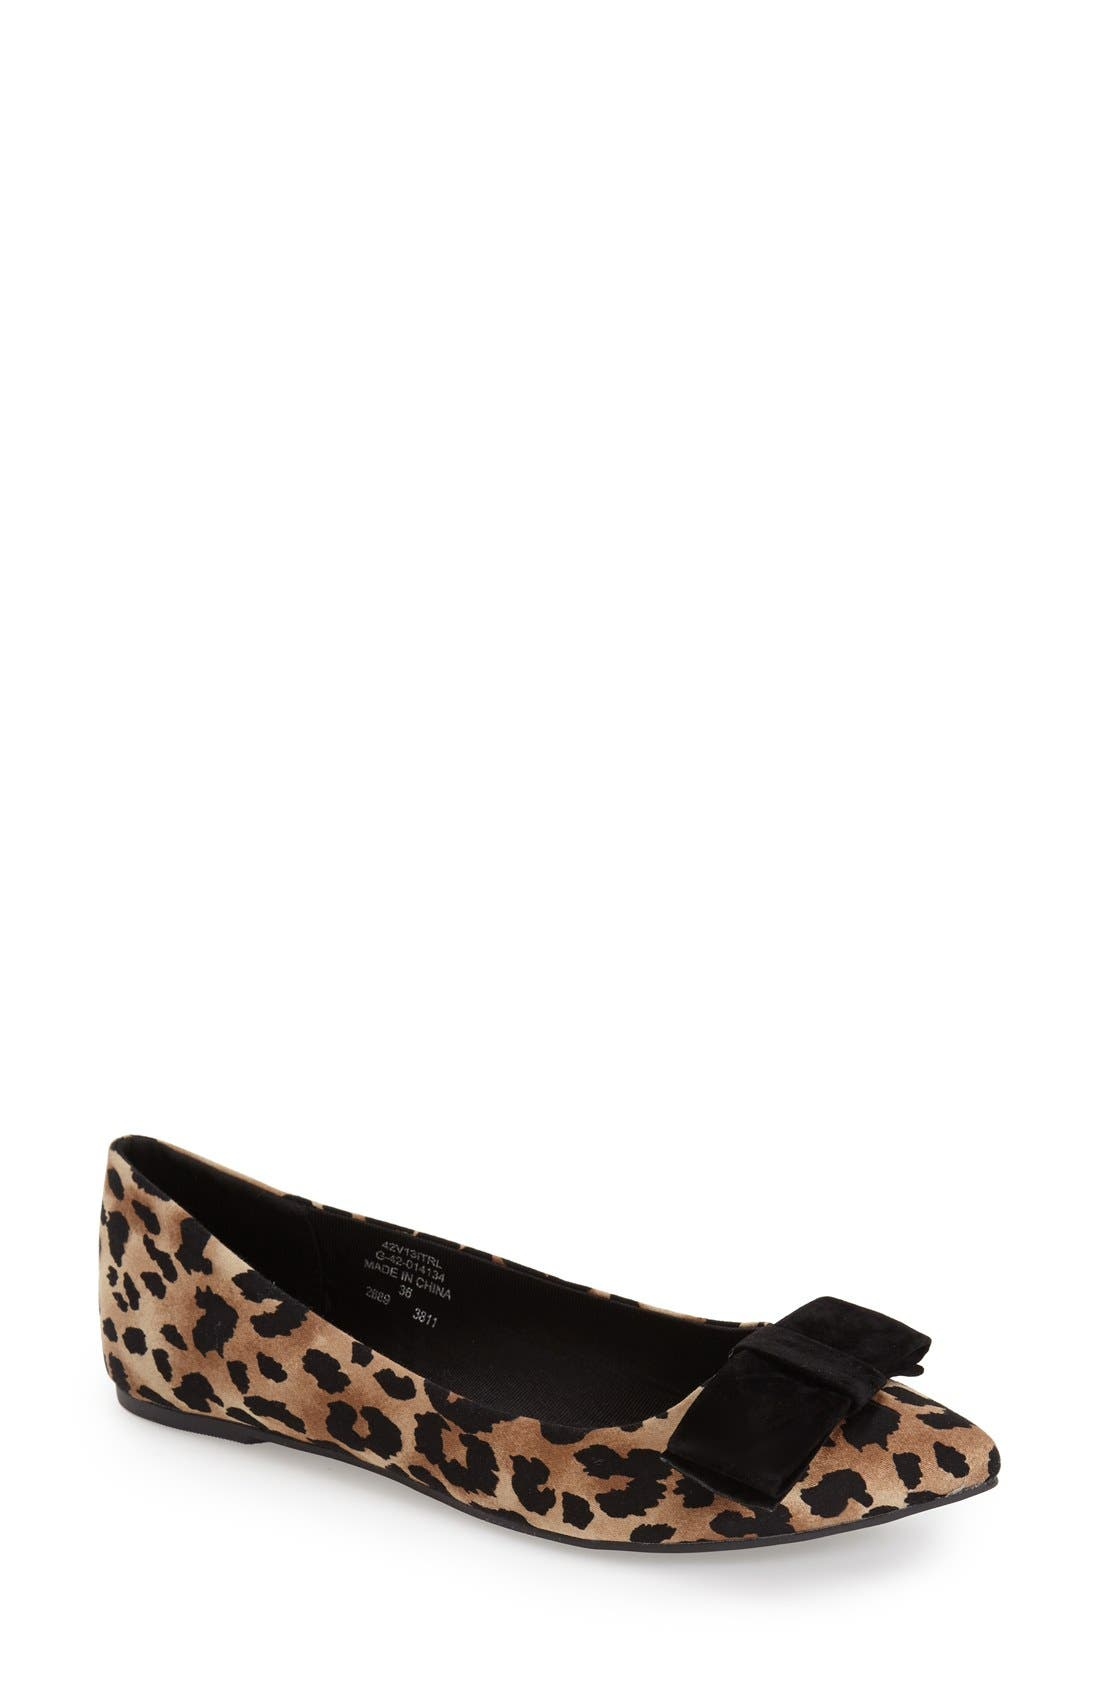 Main Image - Topshop 'Villa' Pointy Toe Flat (Women)